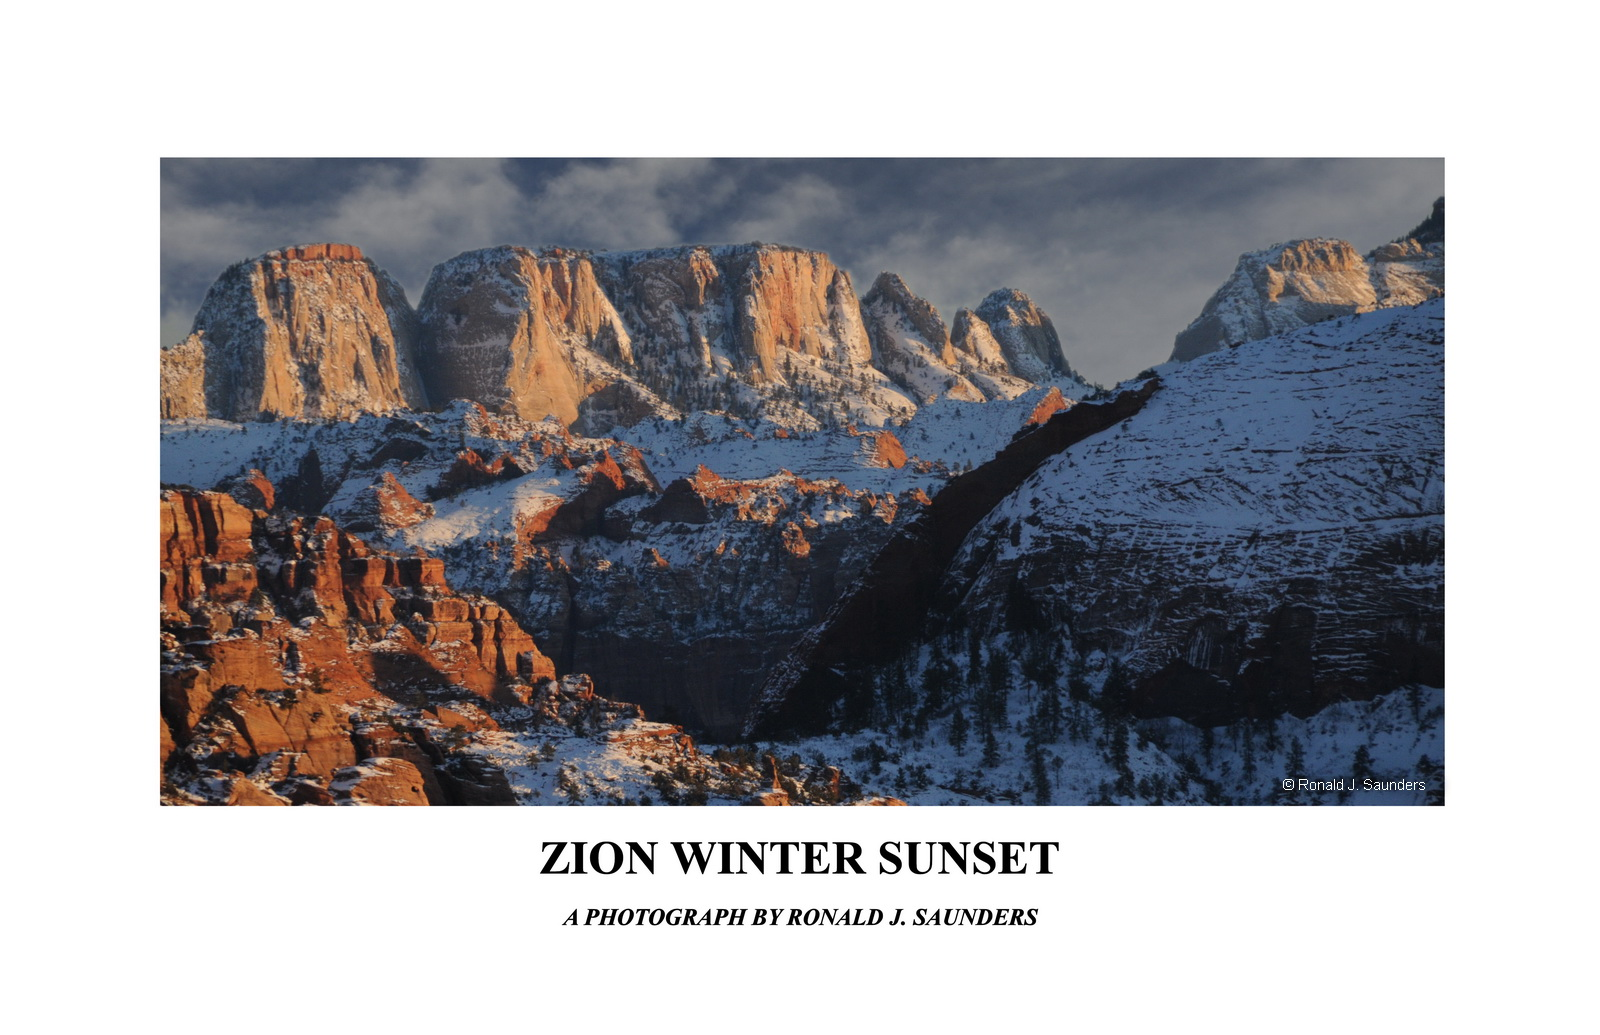 A seldom photgraphed view of Zion in winter during early evening sun.